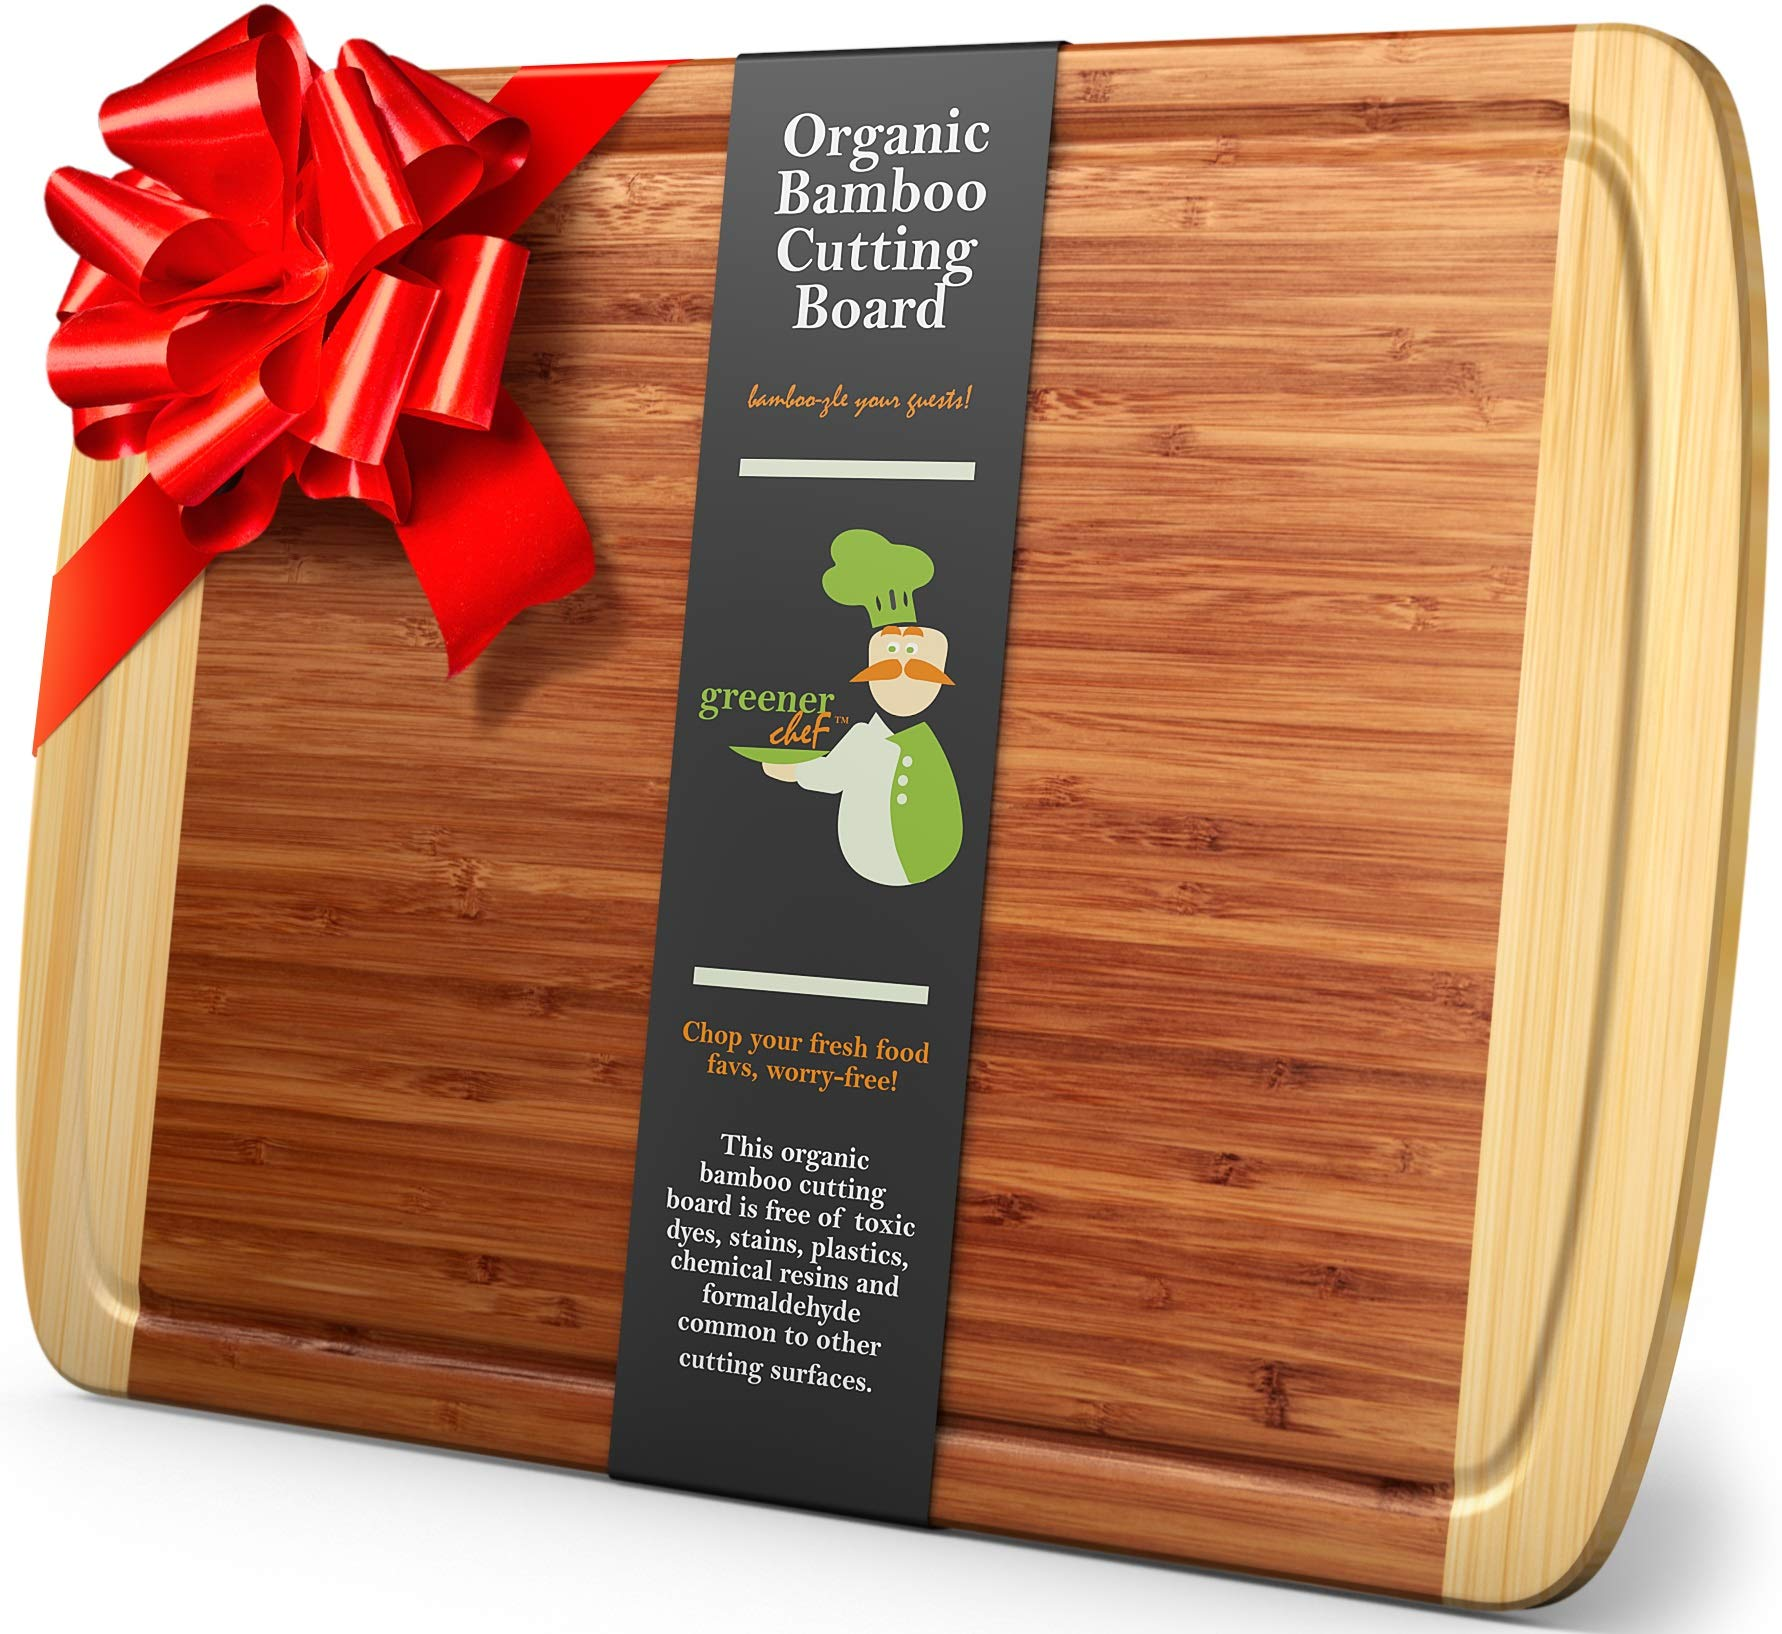 Greener Chef Extra Large Bamboo Cutting Board - Lifetime Replacement Cutting Boards for Kitchen - 18 x 12.5 Inch - Organic Wood Butcher Block and Wooden Carving Board for Meat and Chopping Vegetables by Greener Chef